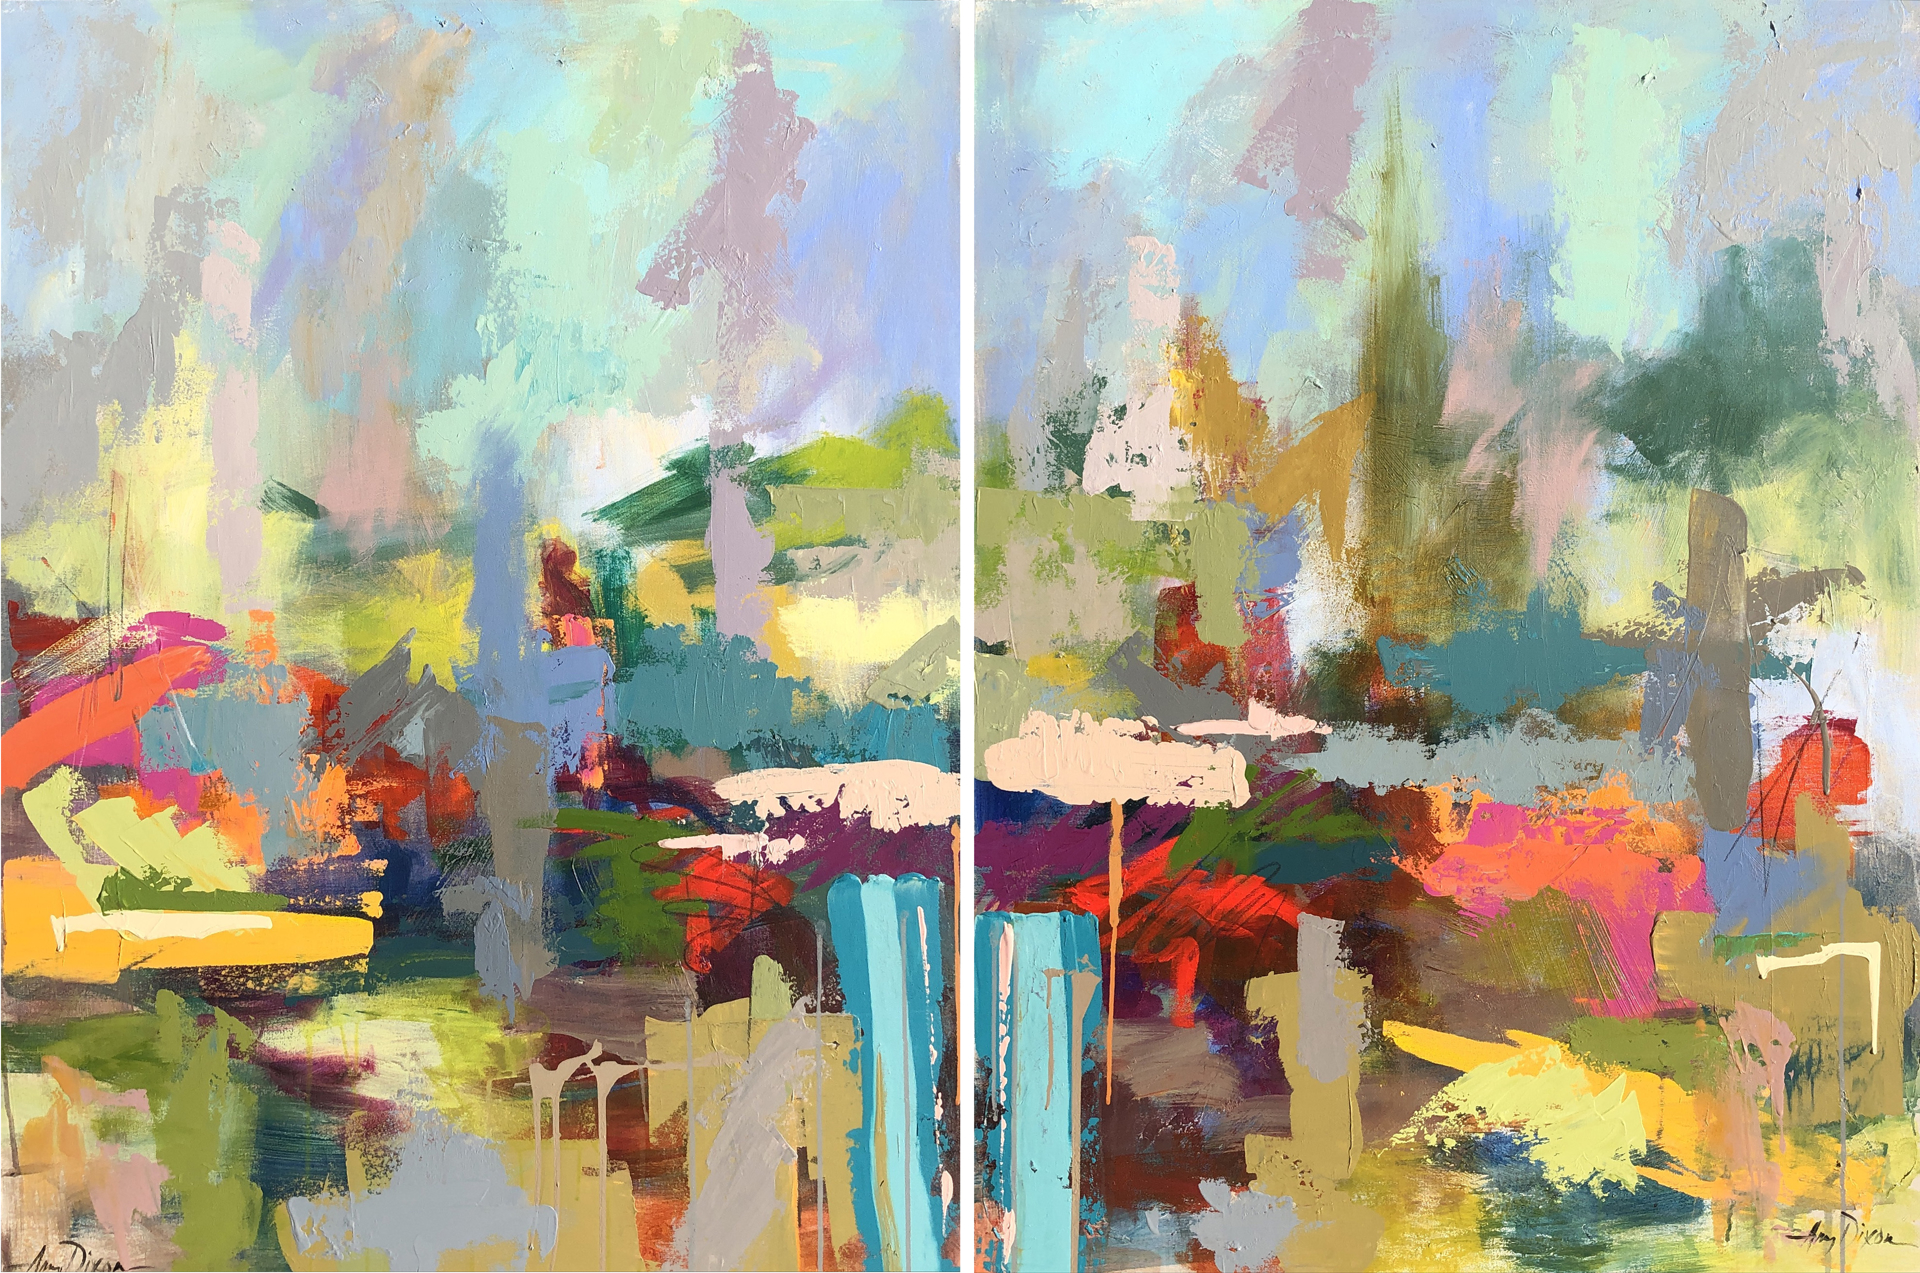 One Minute Vacation (Diptych) by Amy Dixon